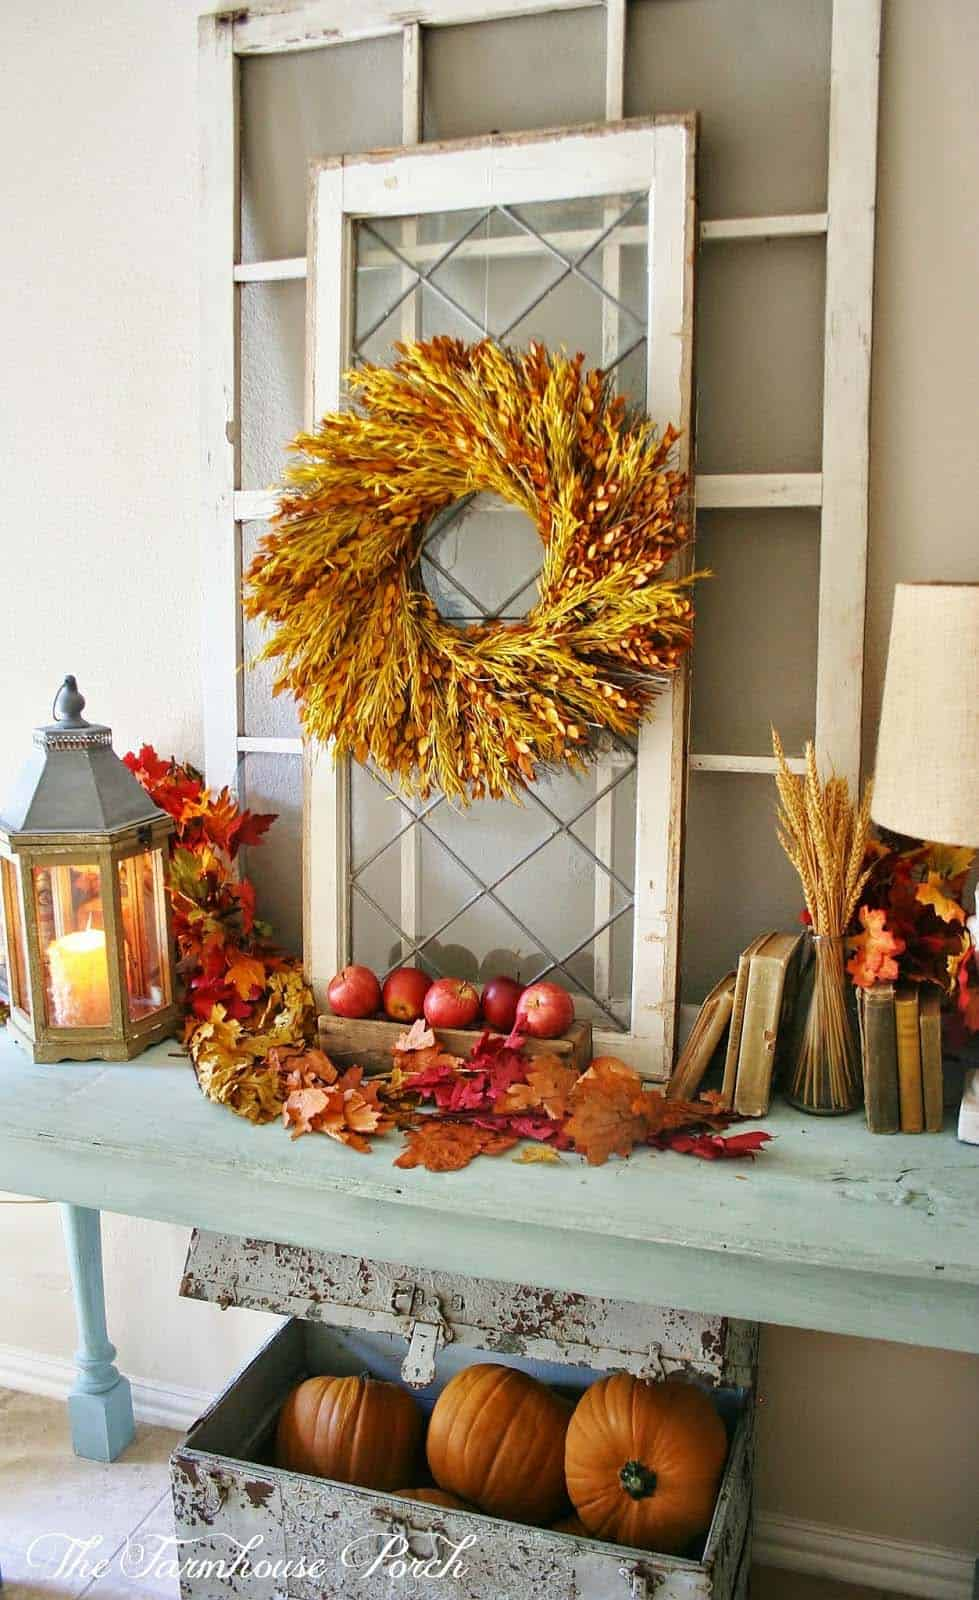 Fall-Inspired Entryway Decorating Ideas-15-1 Kindesign